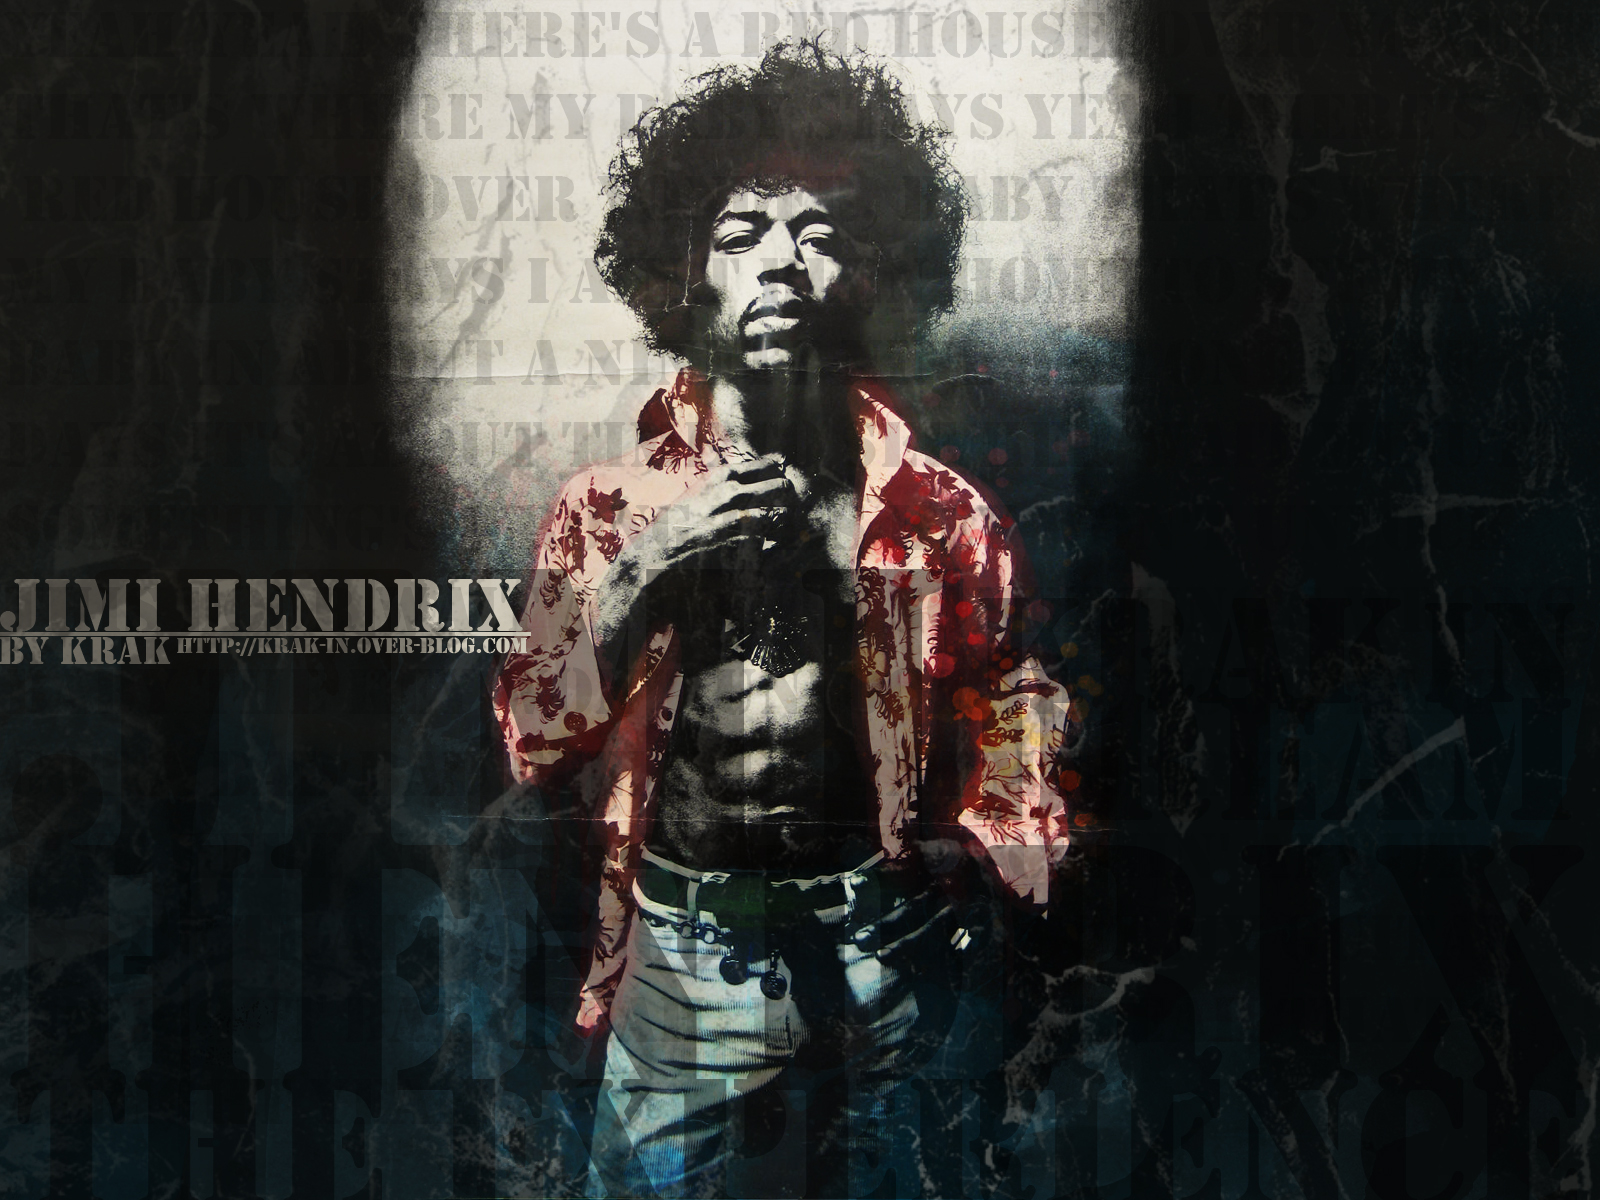 1600x1200px jimi hendrix wallpaper hd wallpapersafari jimi hendrix computer wallpapers desktop backgrounds 1600x1200 id 1600x1200 altavistaventures Choice Image